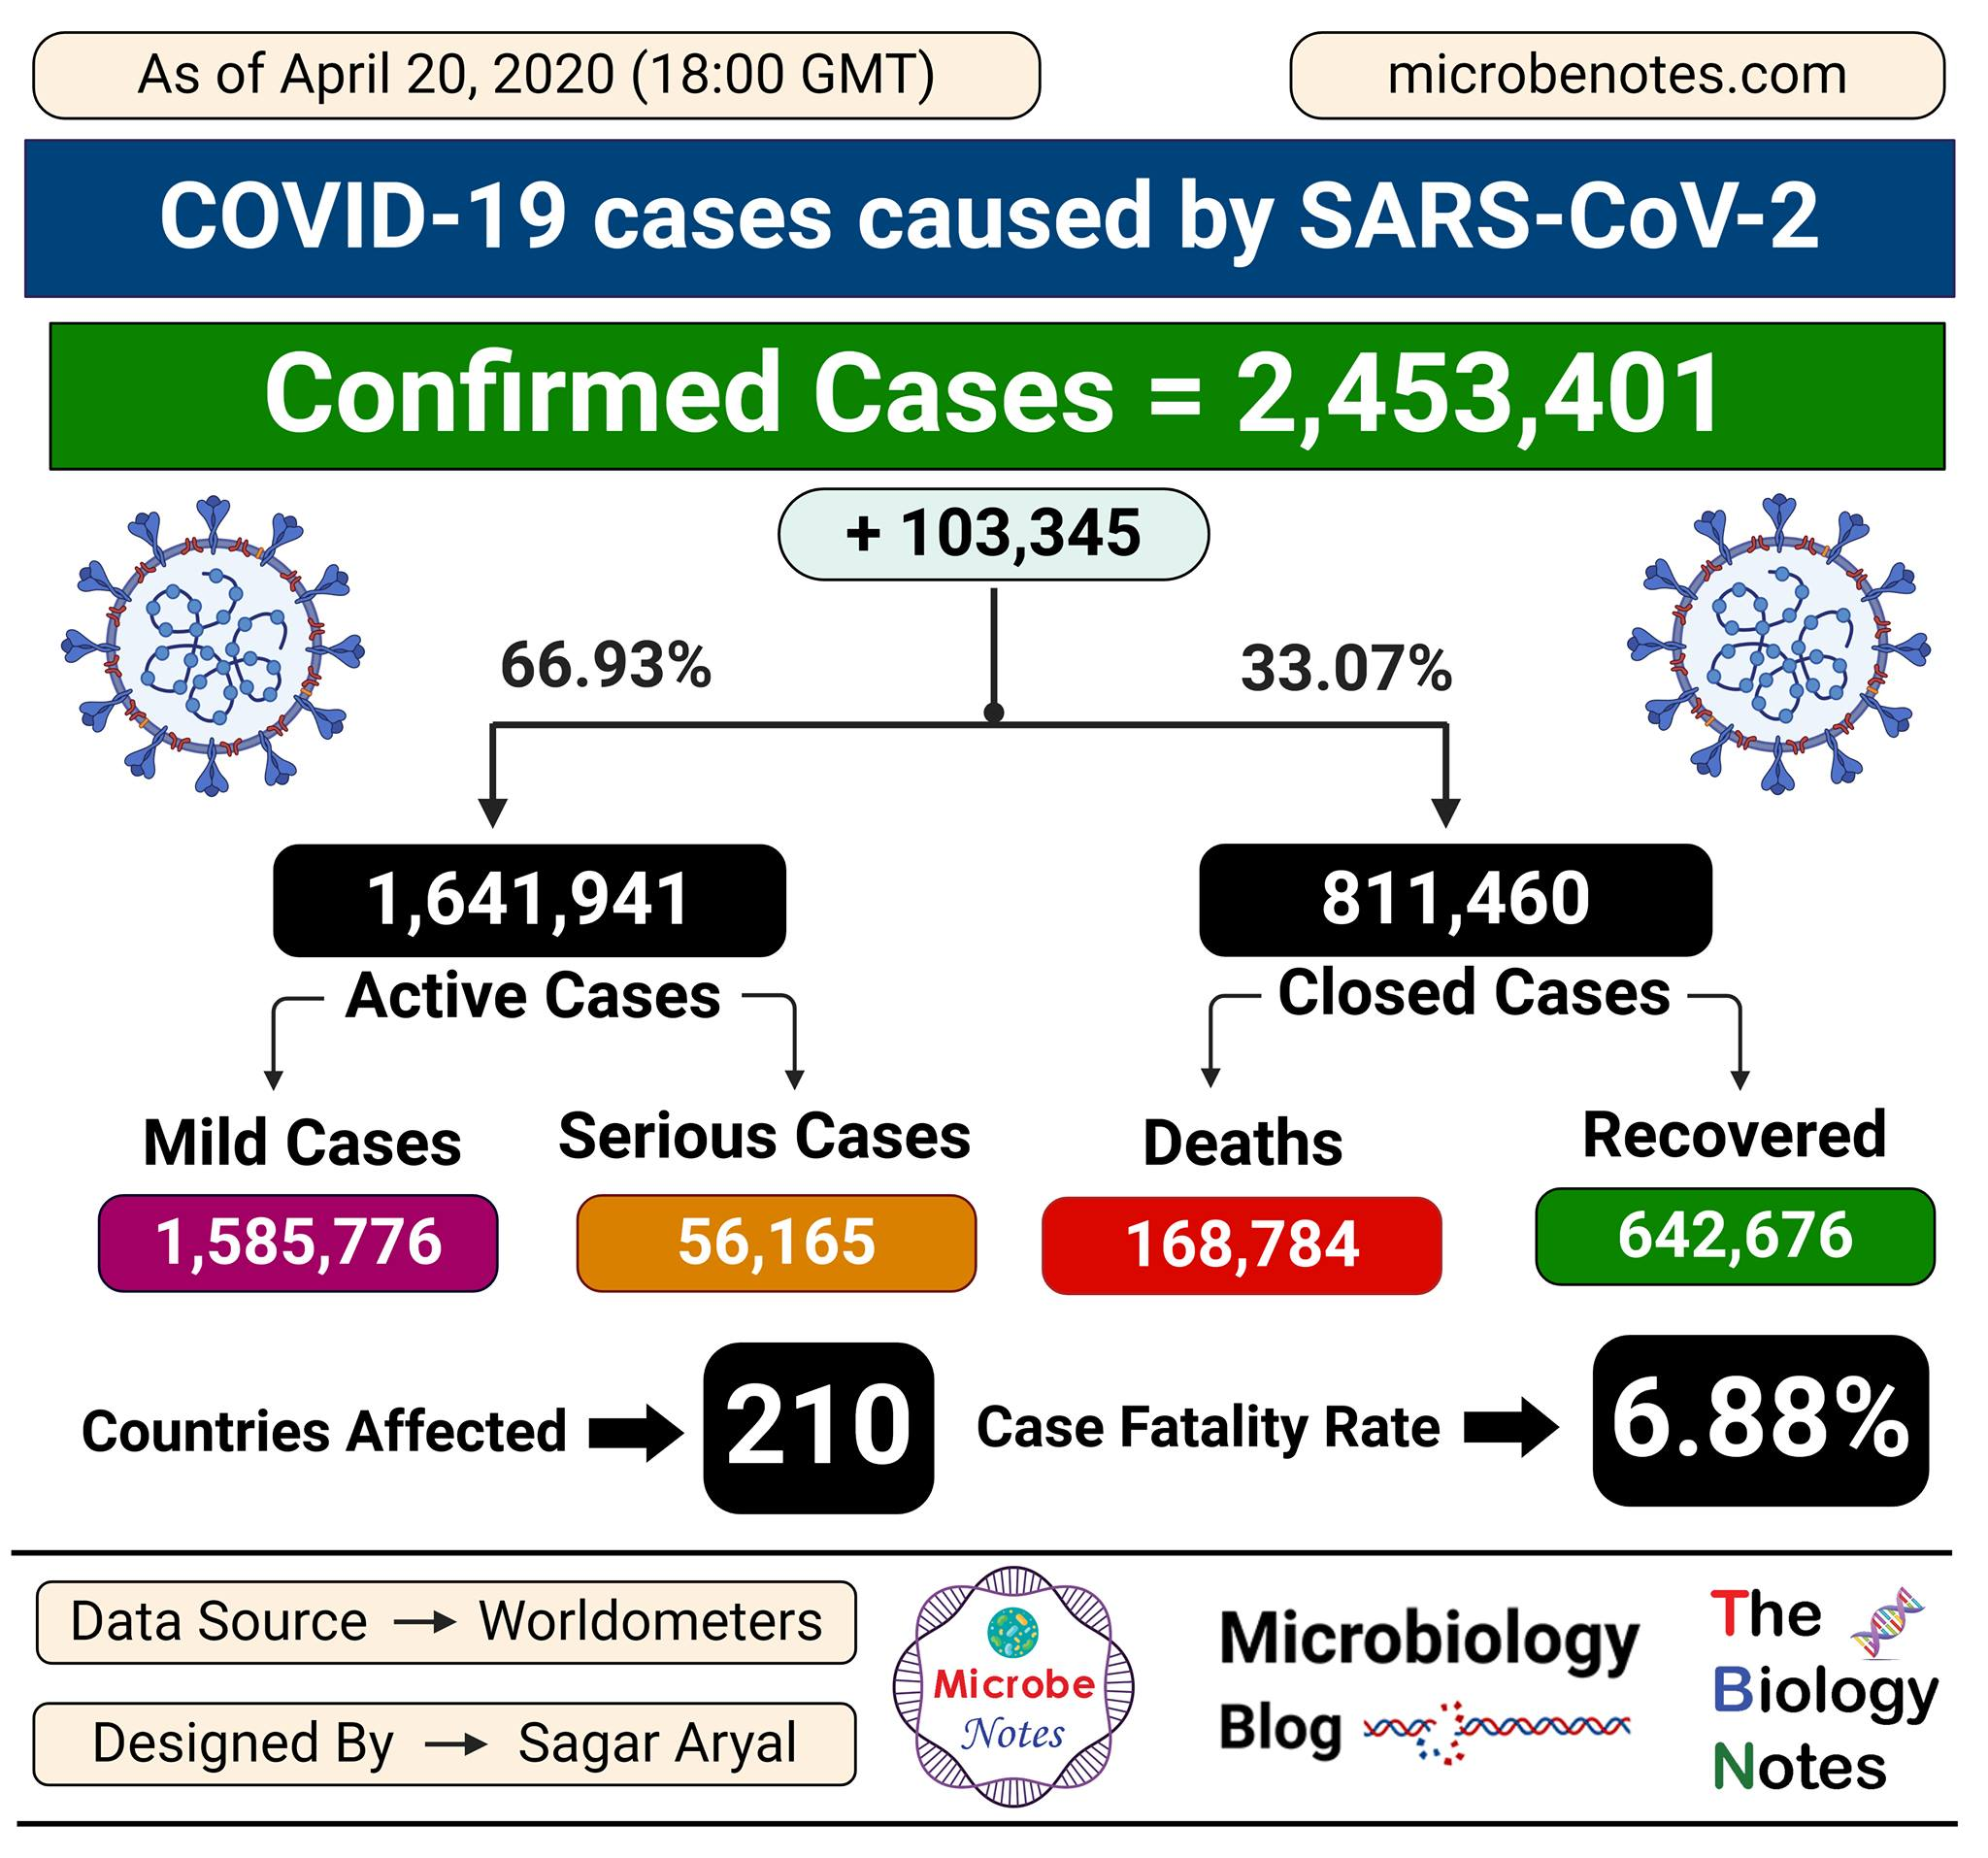 Epidemiology of COVID-19 caused by SARS-CoV-2 as of April 20, 2020